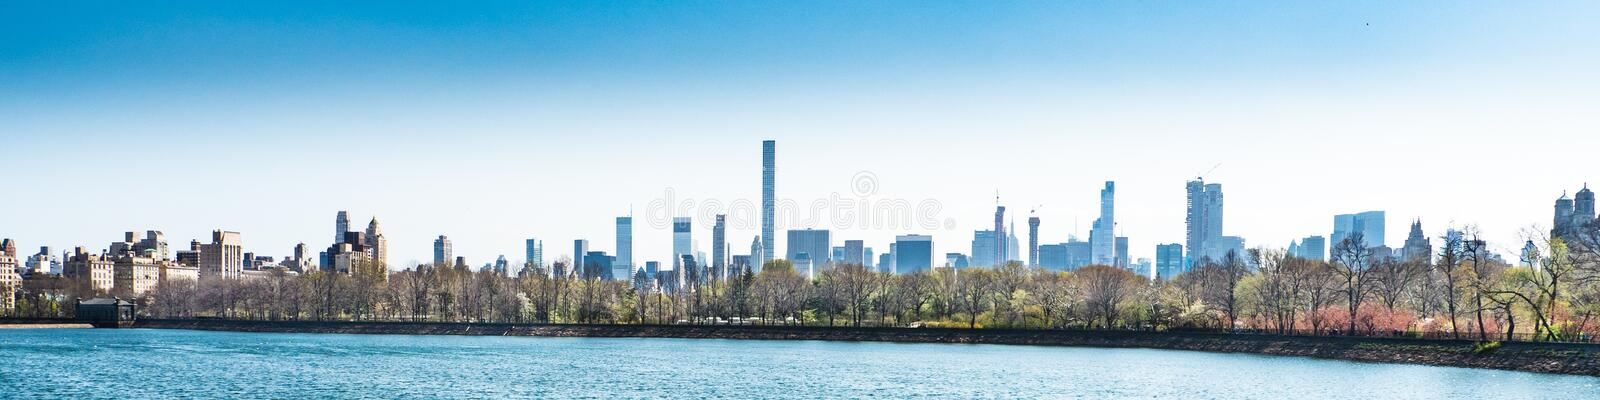 Skyline, City, Water, Daytime royalty free stock photos